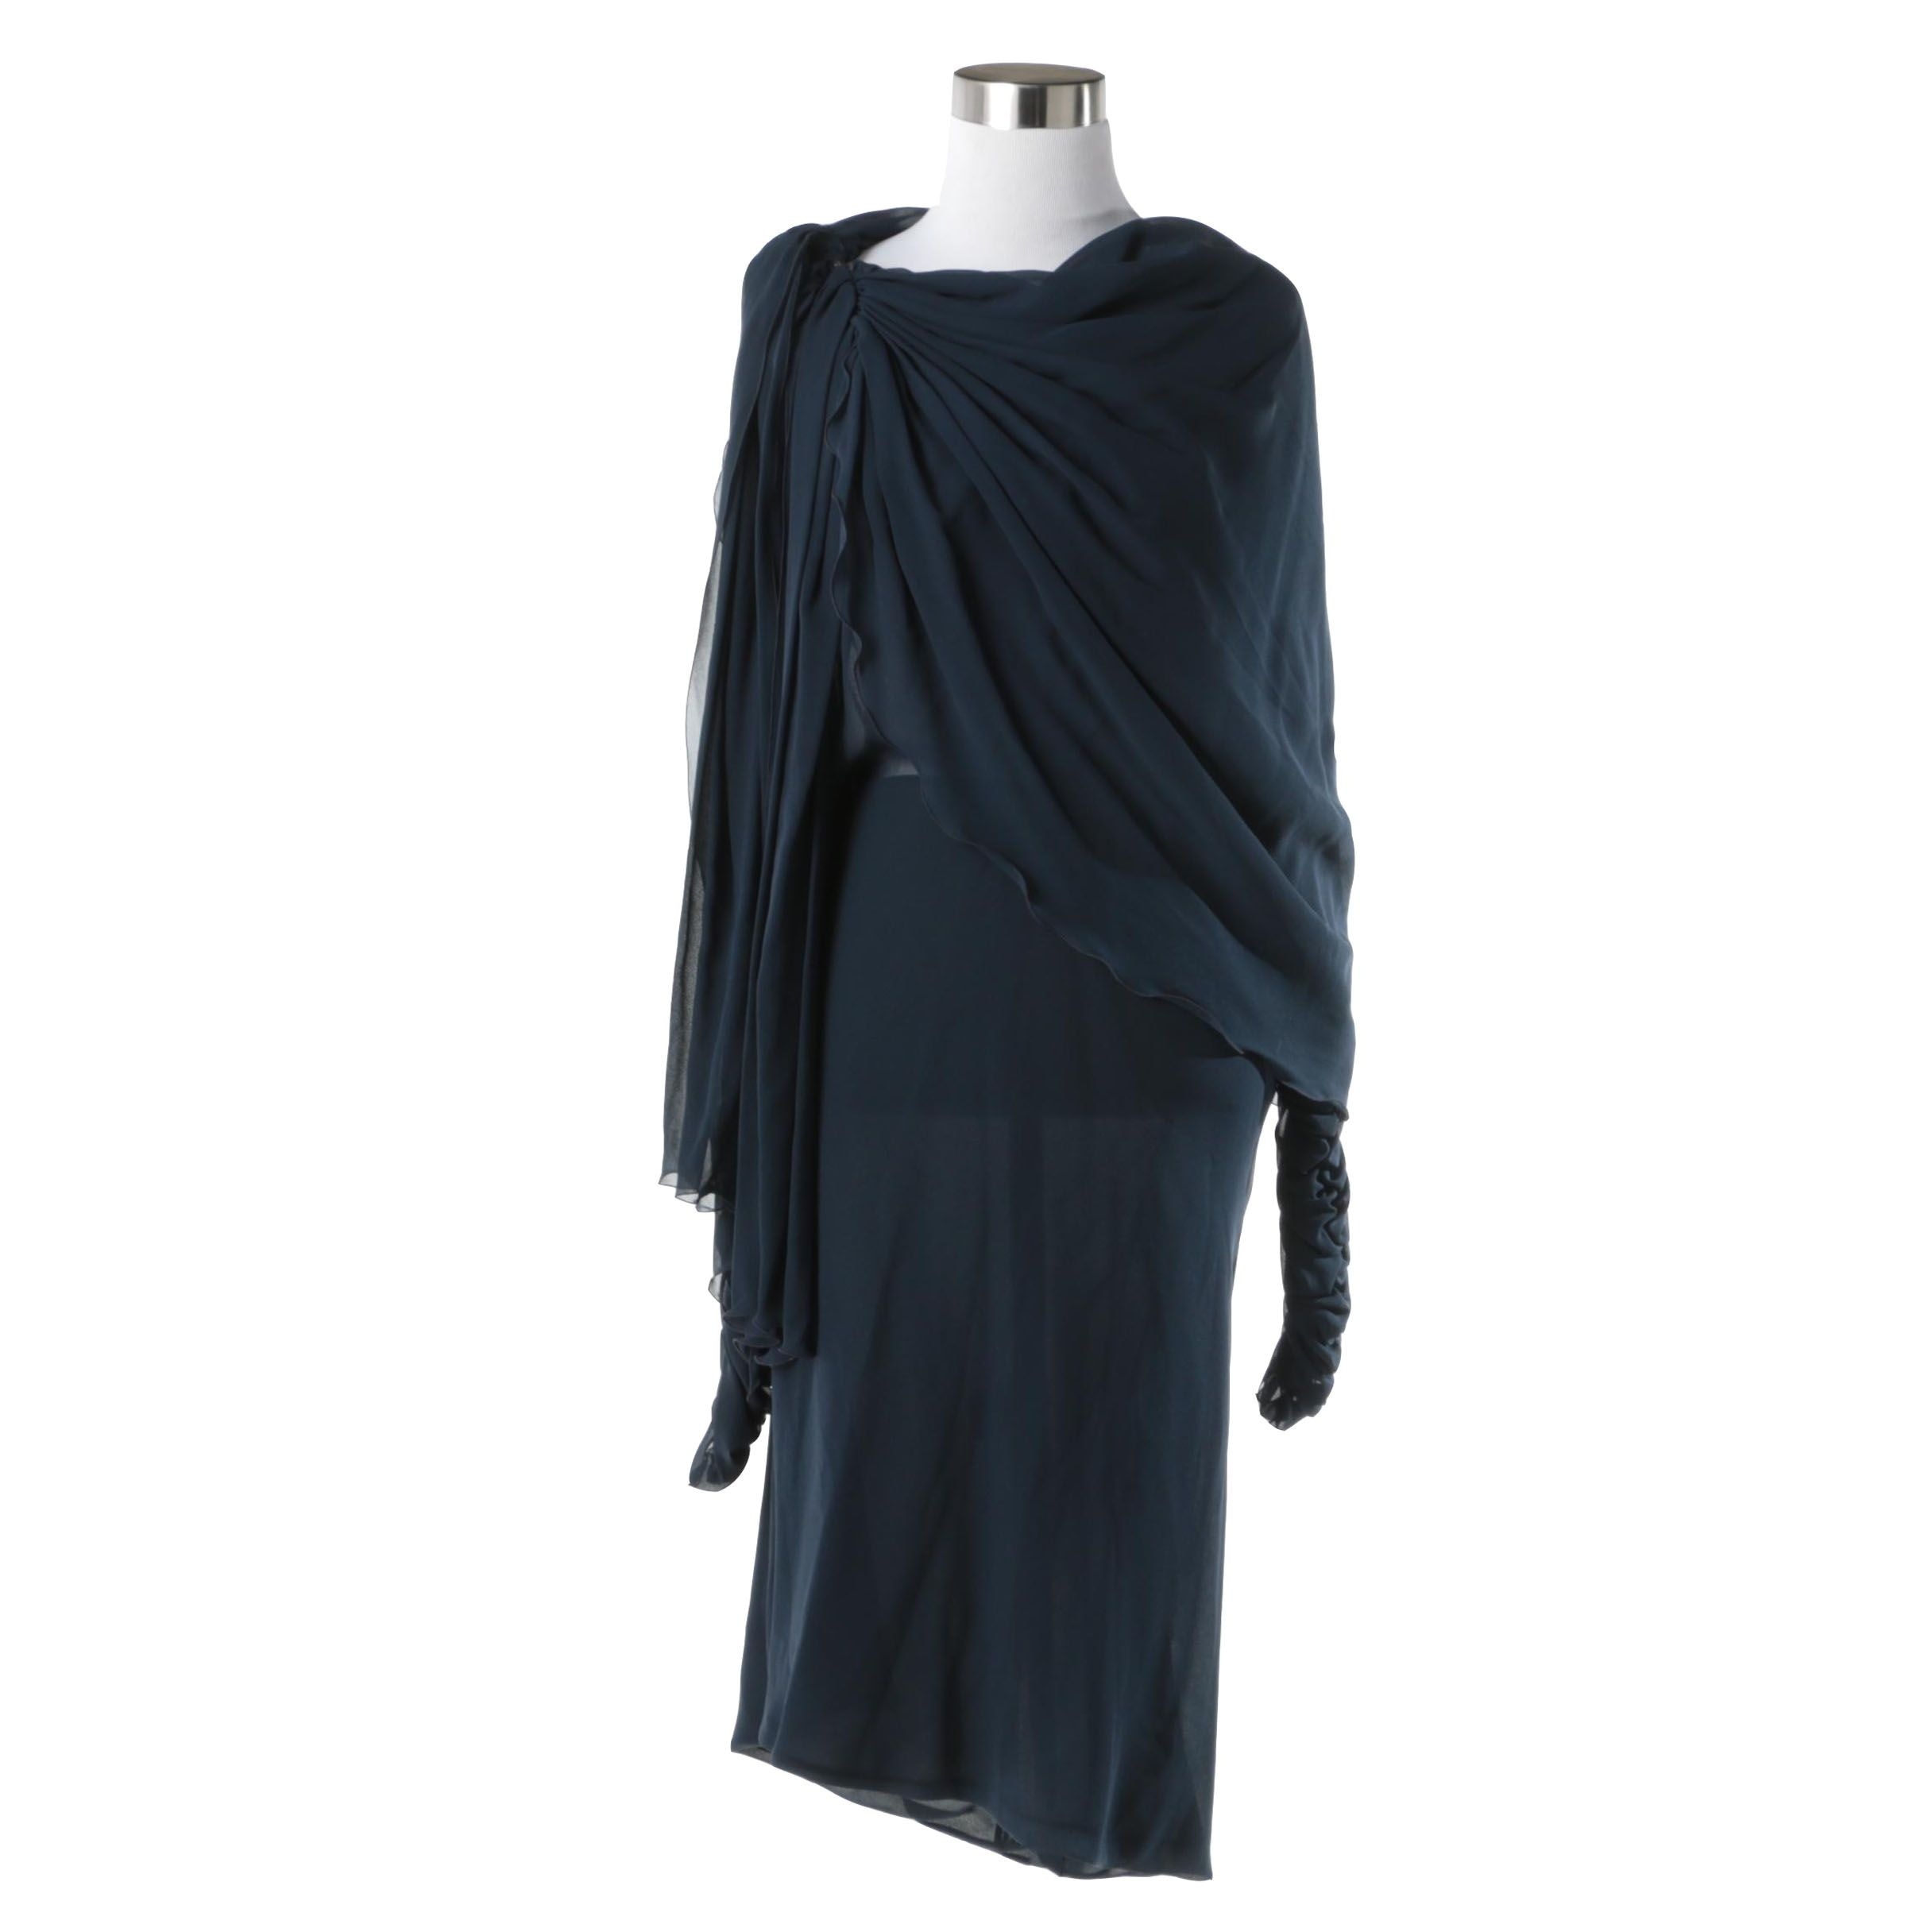 Women's Navy Blue Chiffon Dress